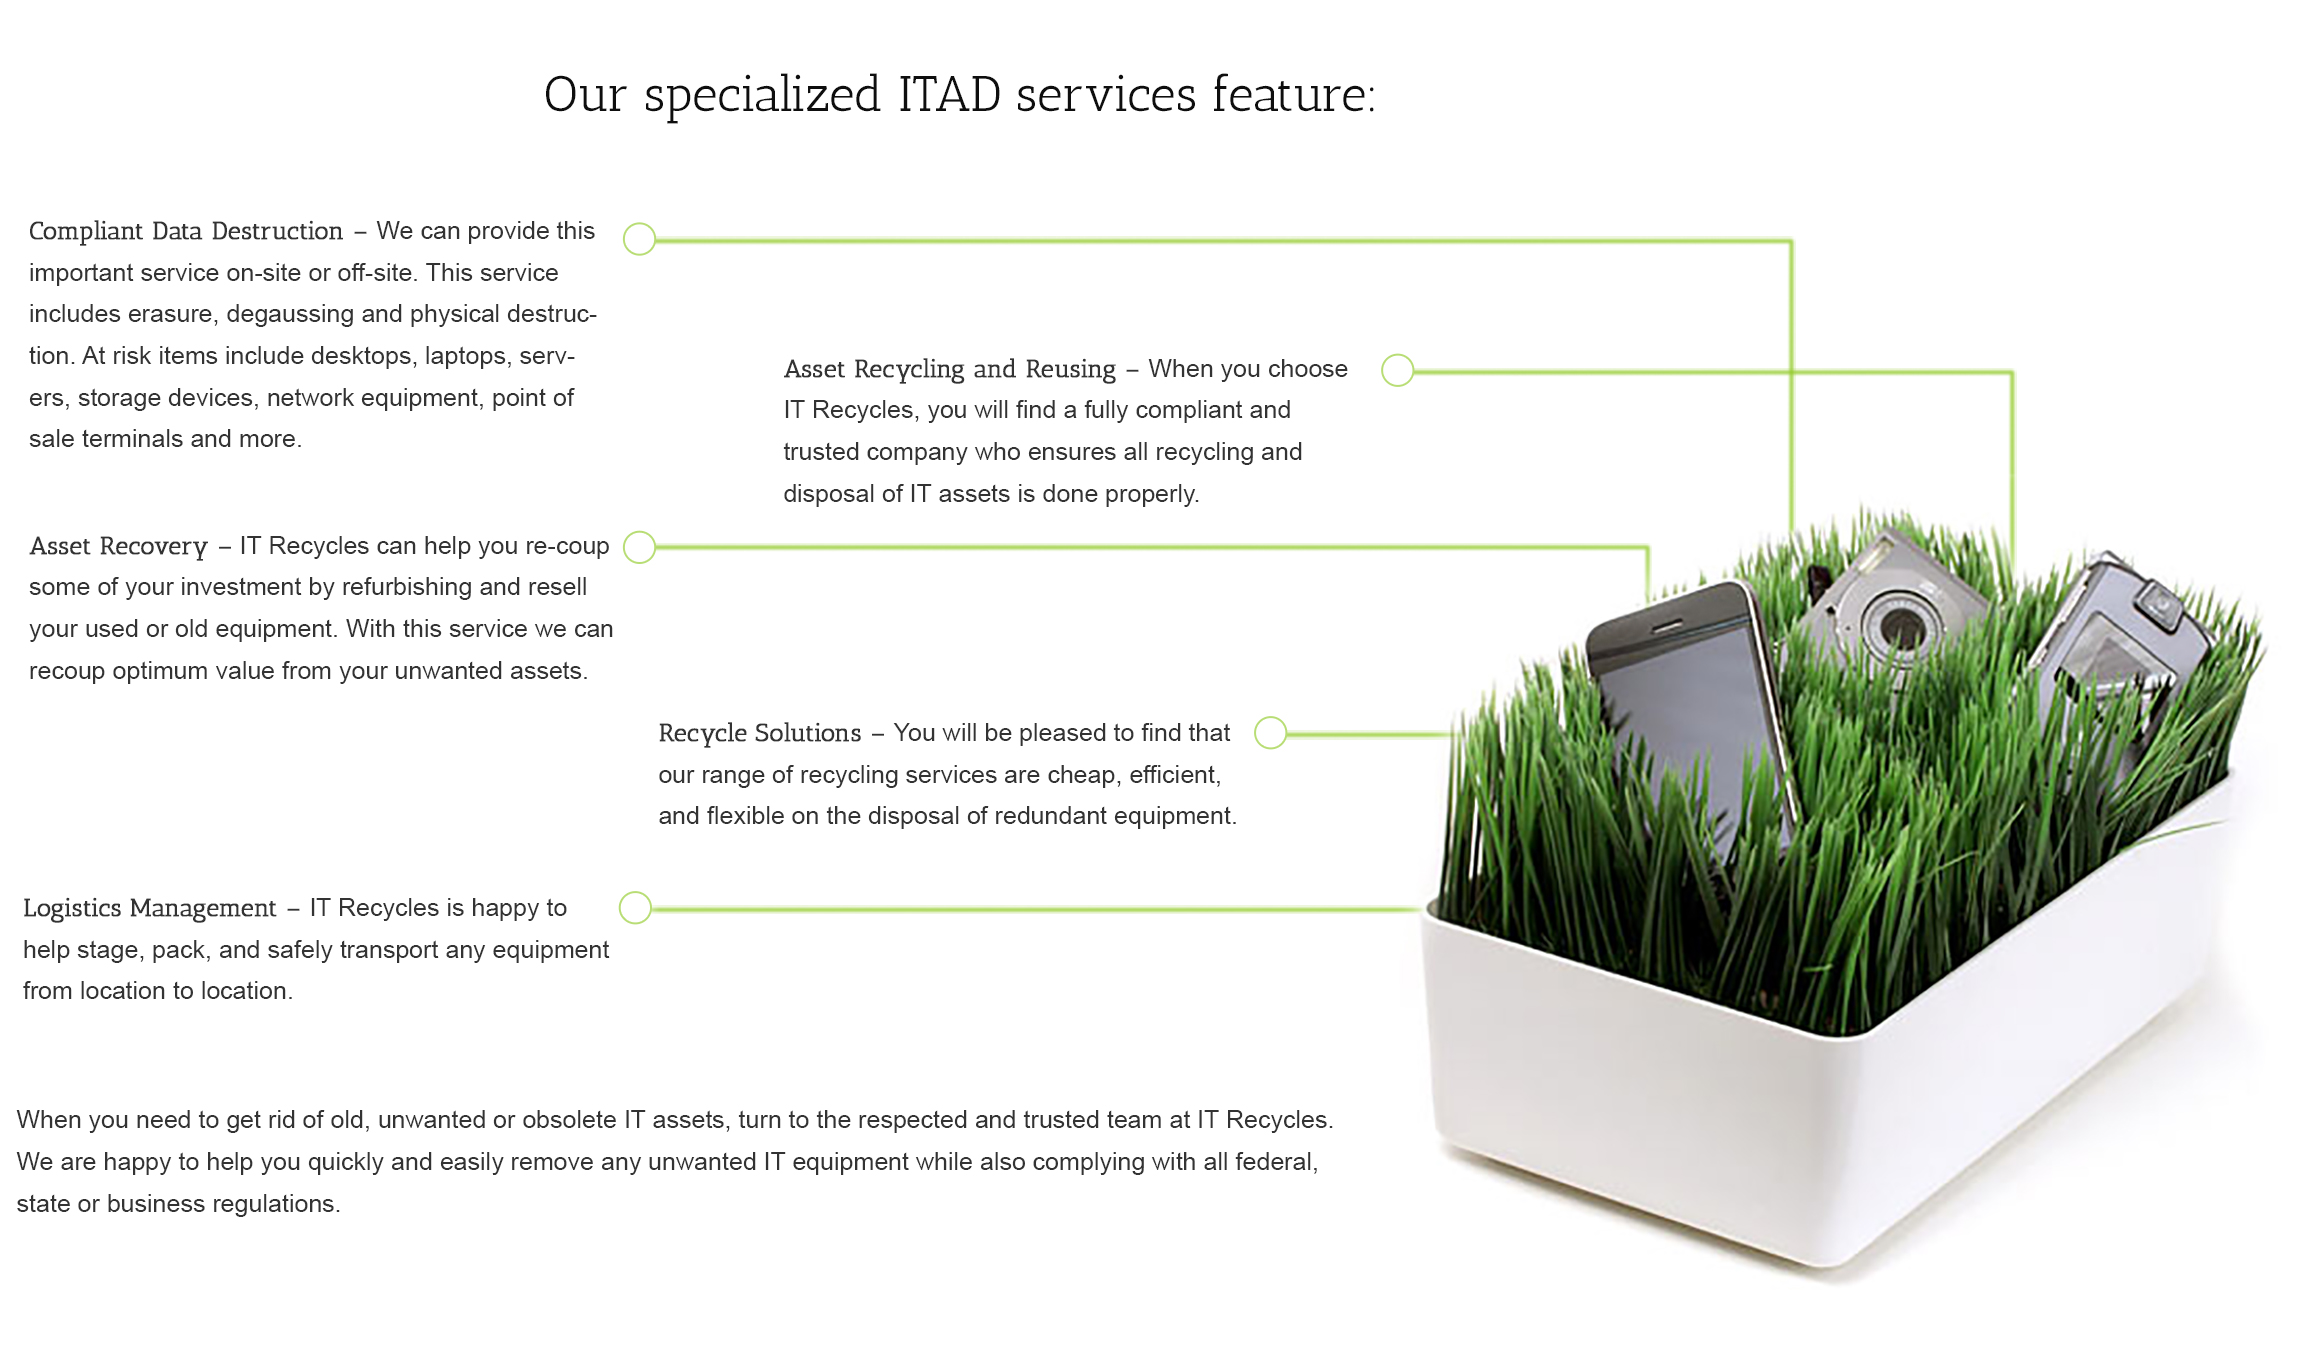 hr-specalized-ITAD-services-feature